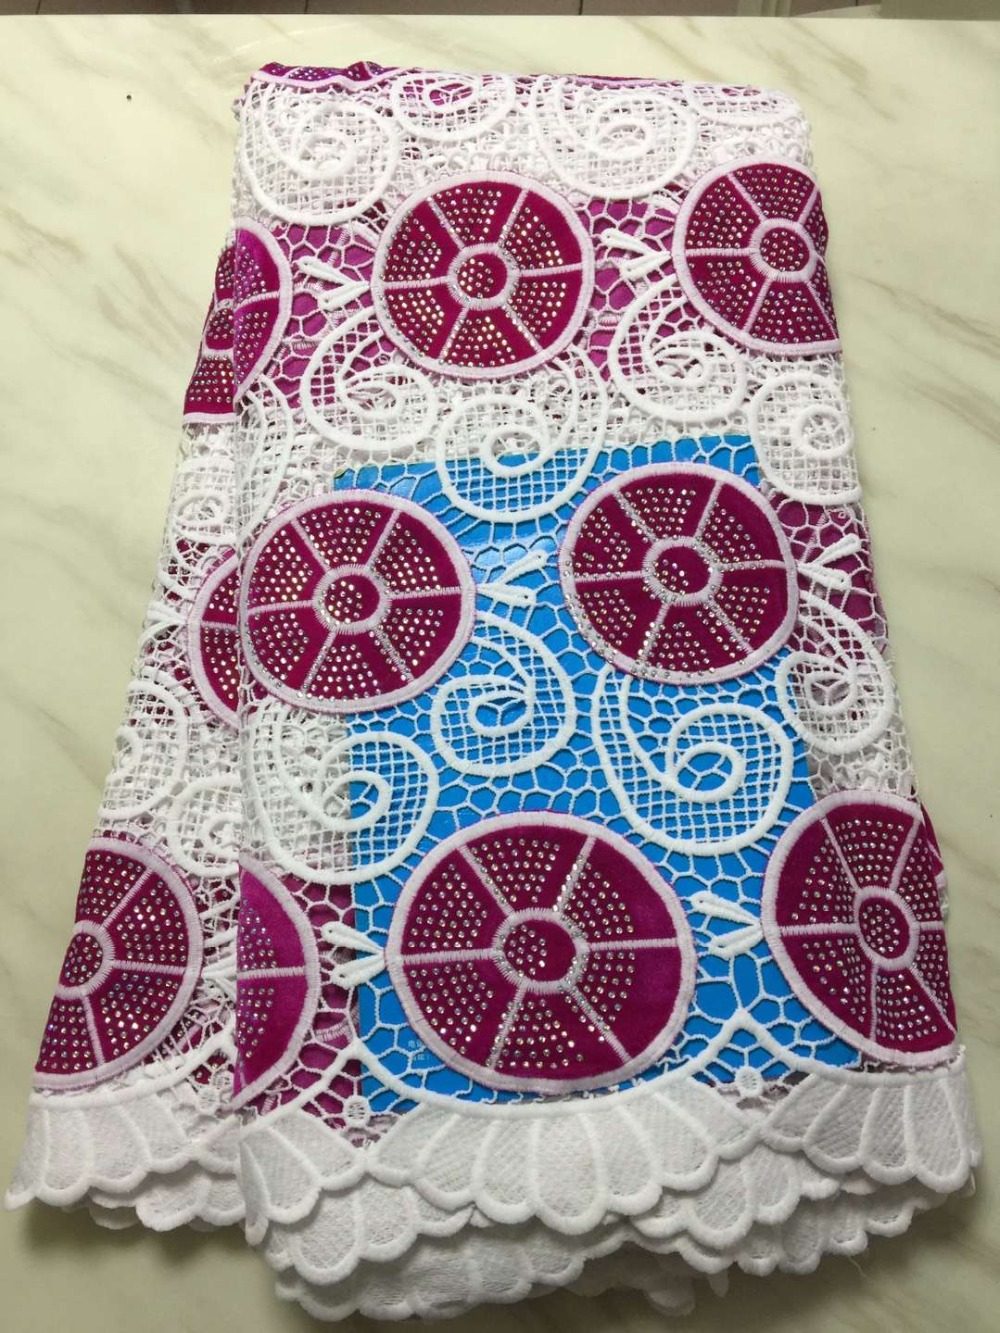 African Lace Fabrics 5yard  Guipure Lace Fabric 2019 High Quality Nigerian Cord Lace Fabric For Wedding Dresses f16JU04African Lace Fabrics 5yard  Guipure Lace Fabric 2019 High Quality Nigerian Cord Lace Fabric For Wedding Dresses f16JU04